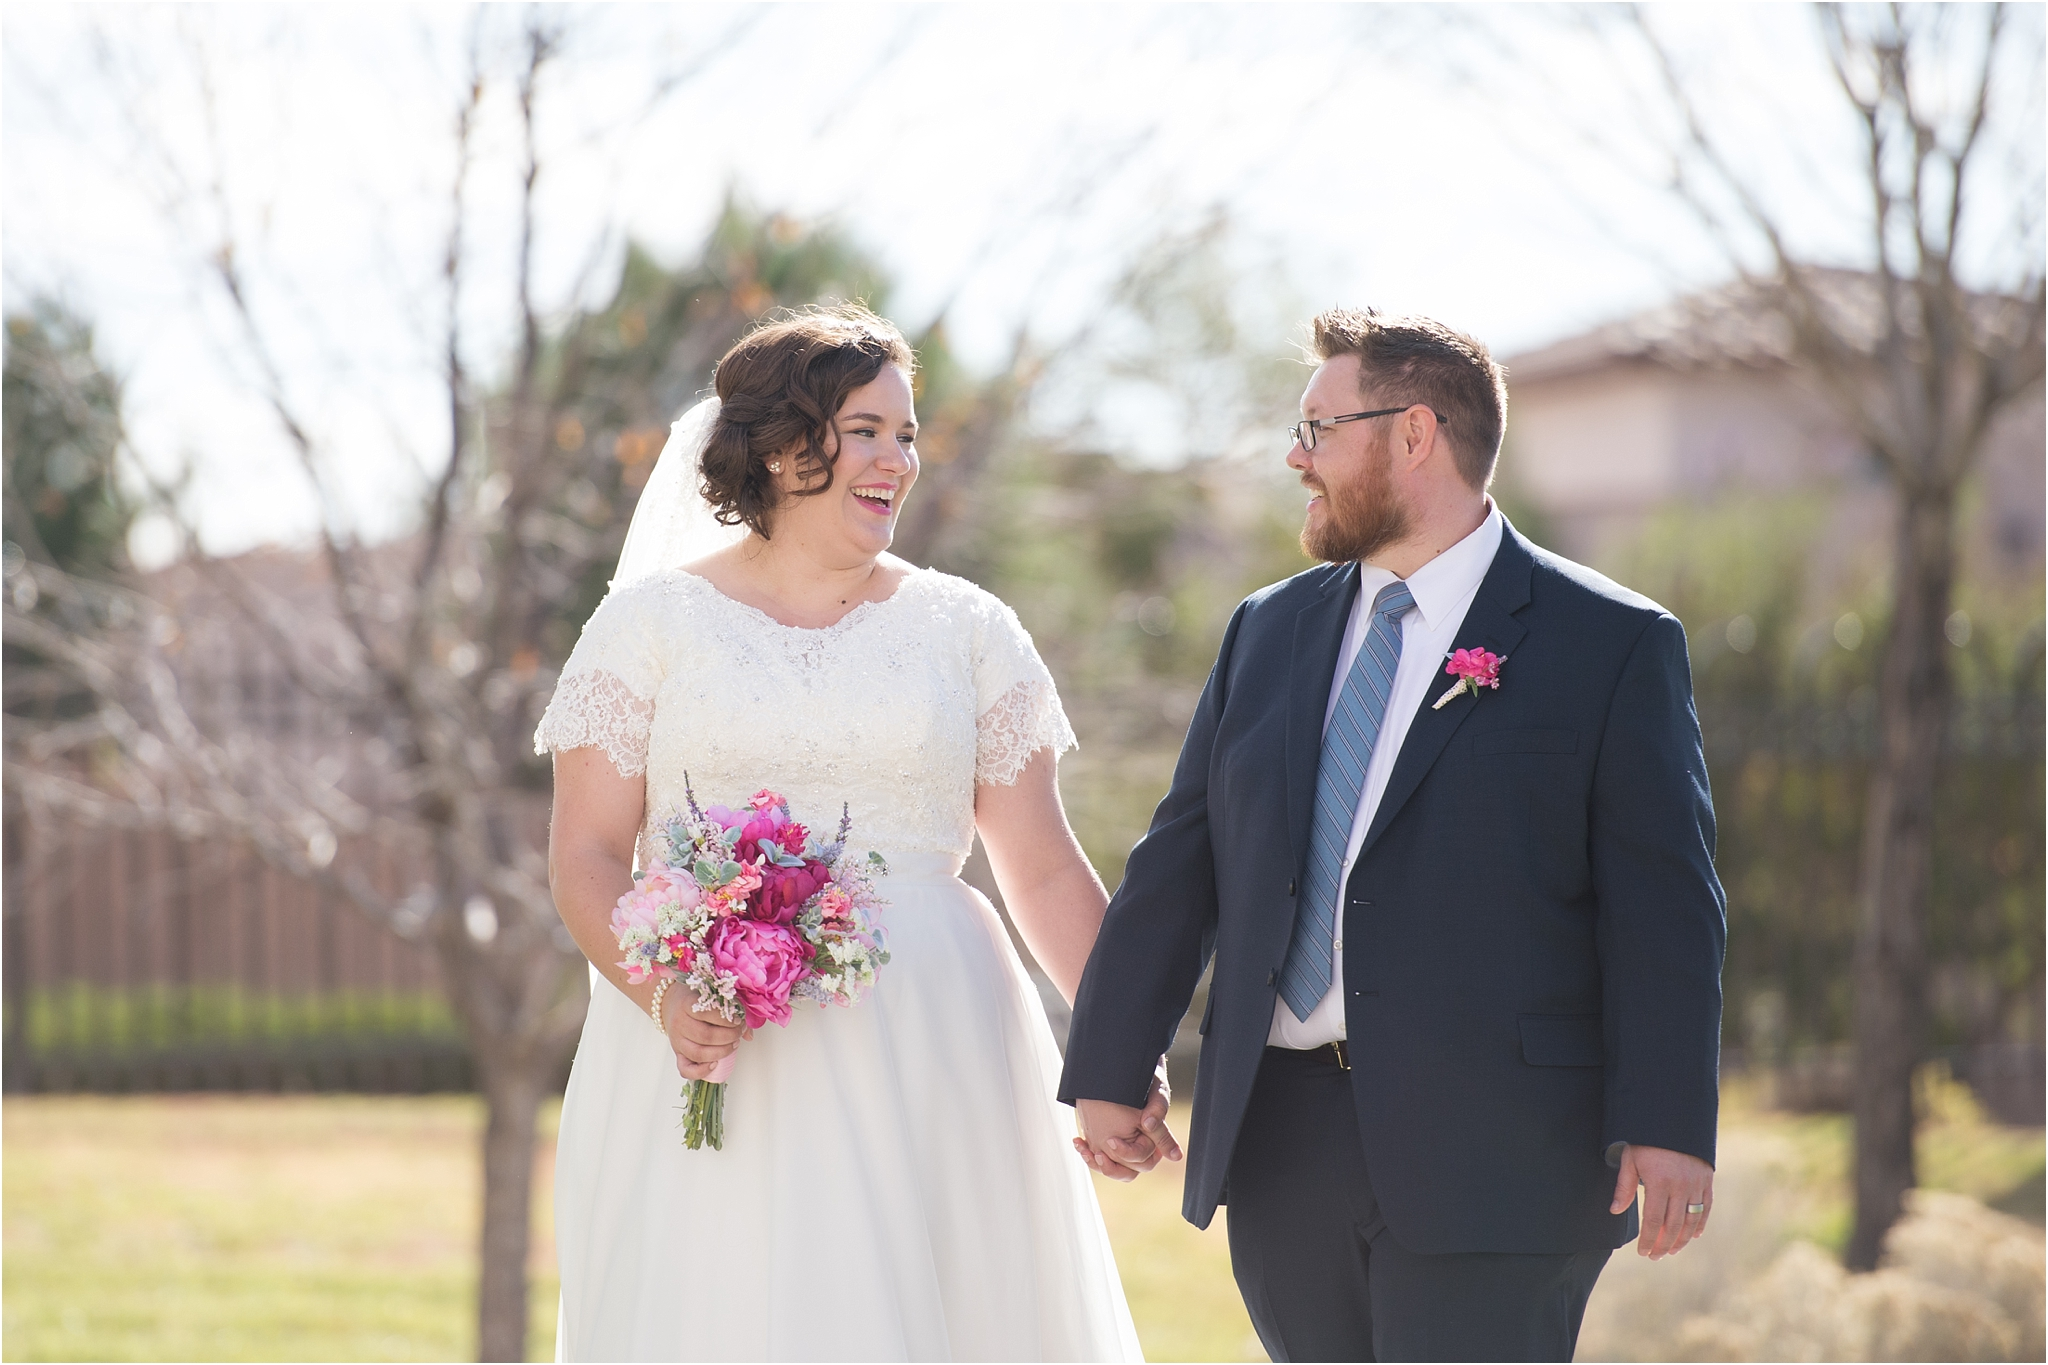 kayla kitts photography - albuquerque wedding photographer - new mexico wedding photographer - desination wedding photographer - cabo wedding photographer_0044.jpg